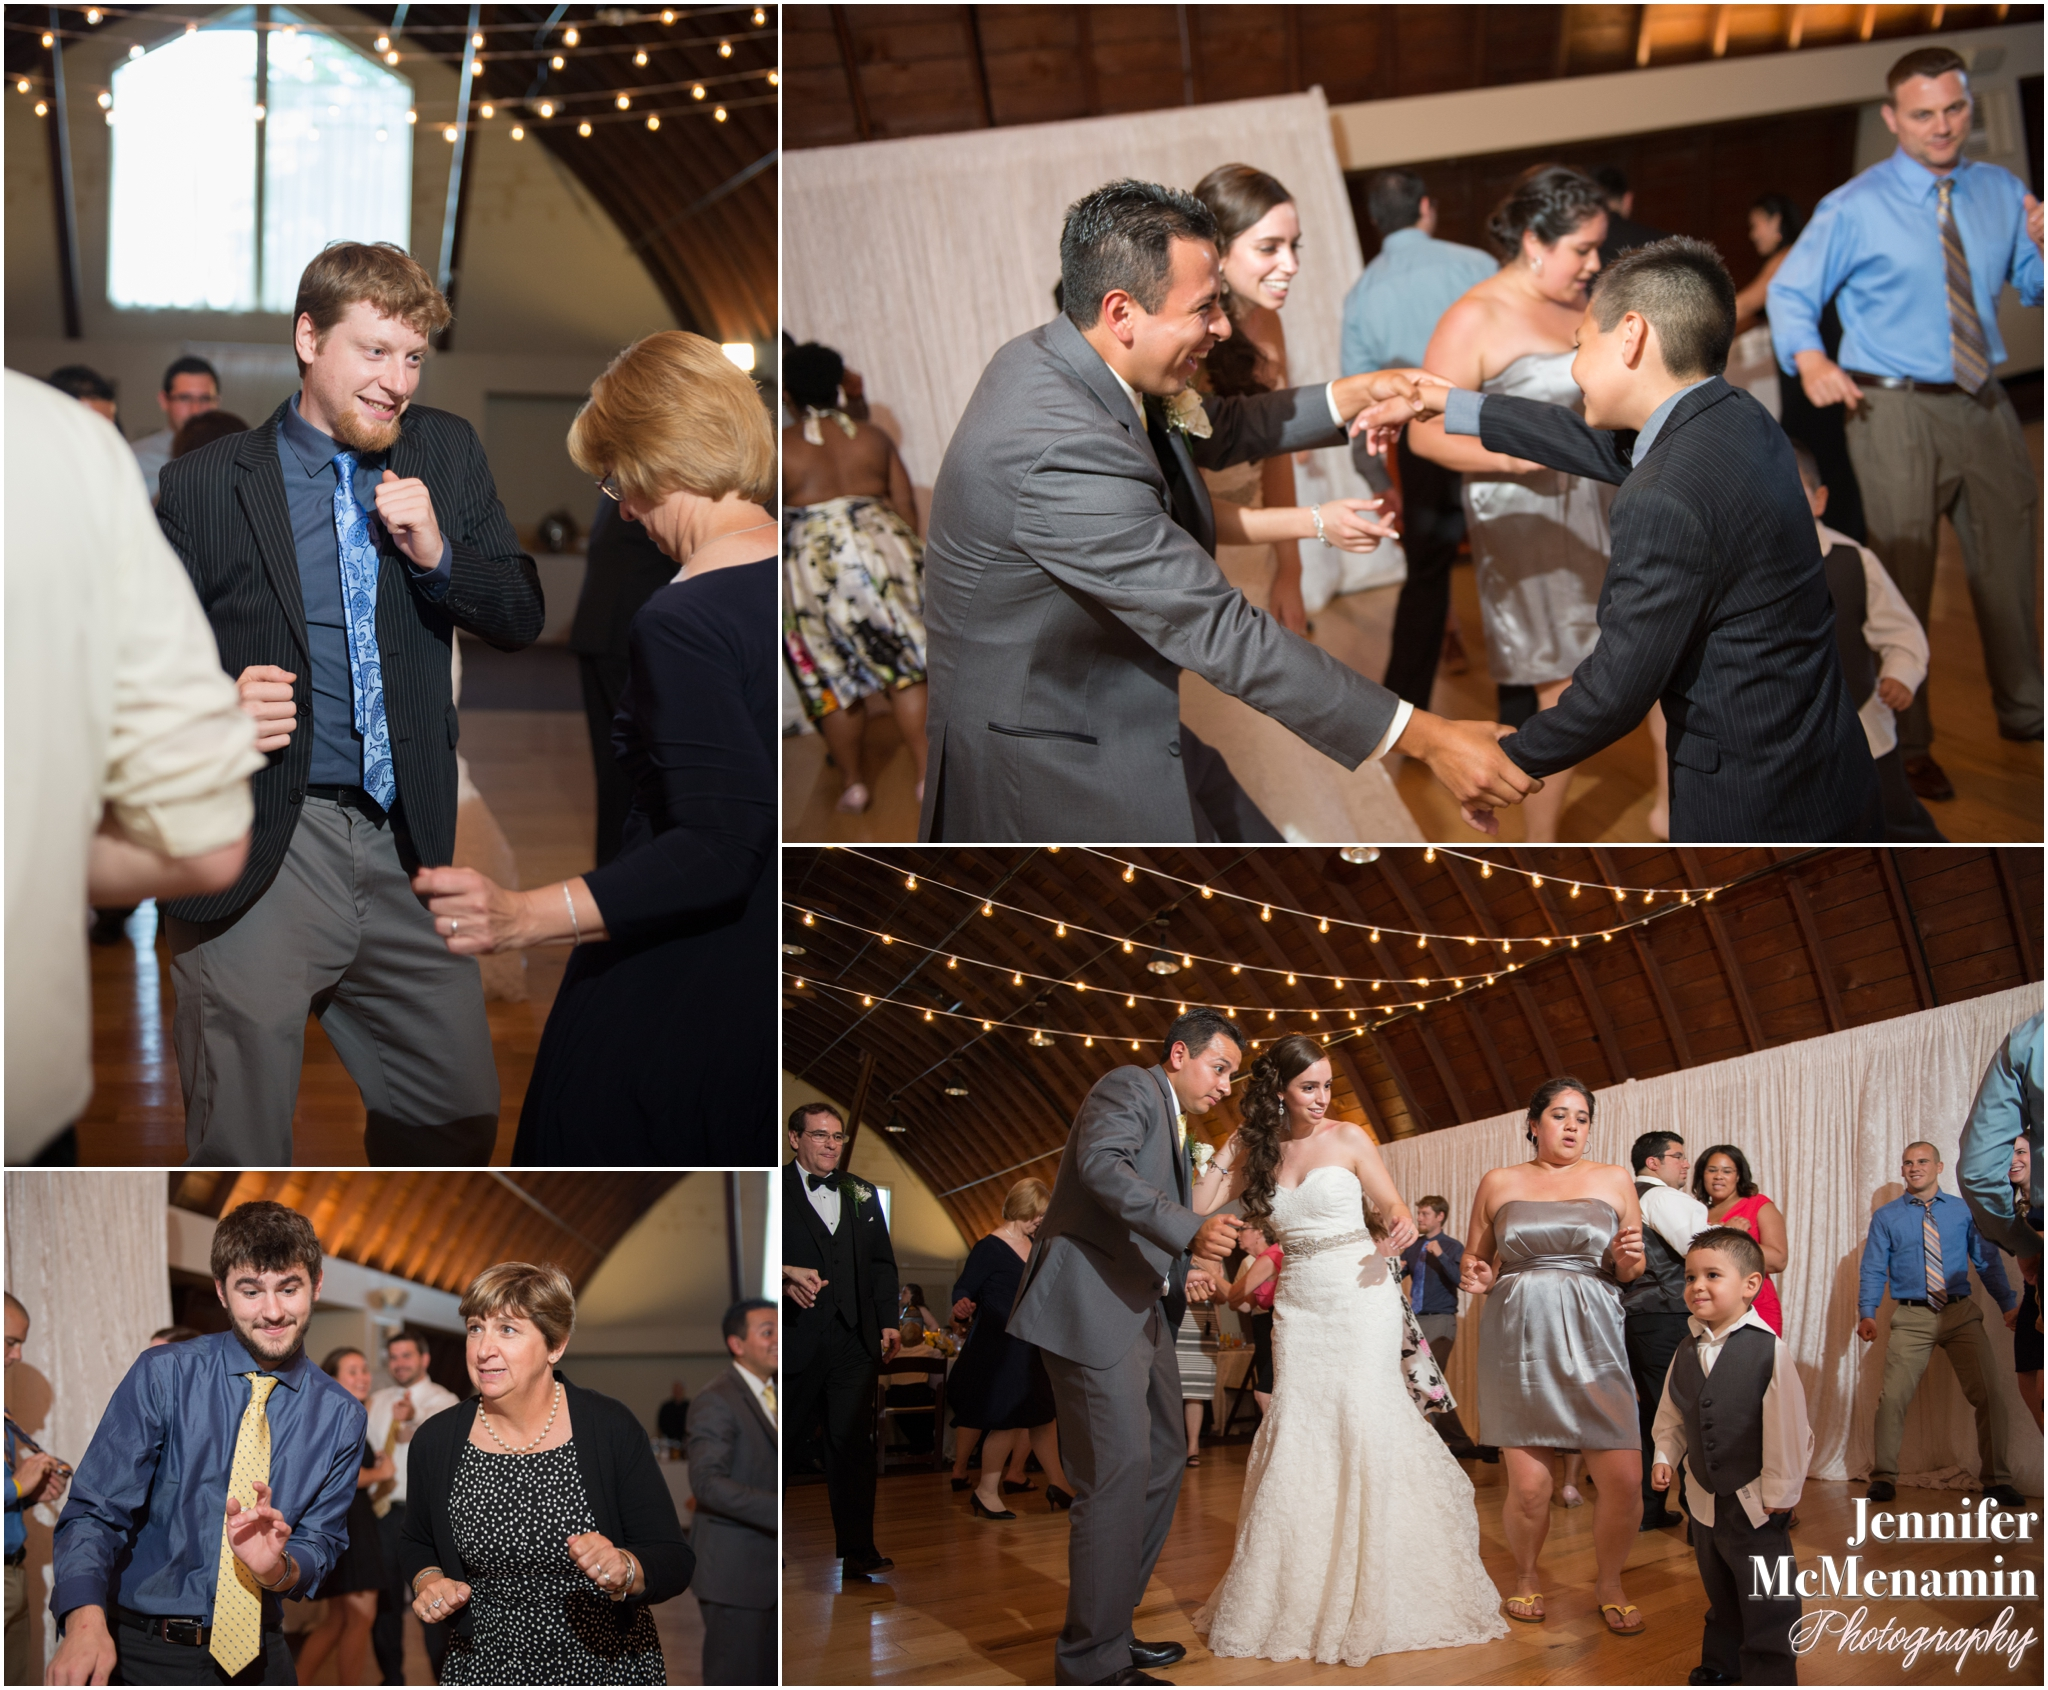 067_SchneiderMagallanes_03259-0669_JenniferMcMenaminPhotography_Baltimore-wedding-photography_St-Mary-of-the-Mills-Church_The-Other-Barn_Maryland-wedding-photography